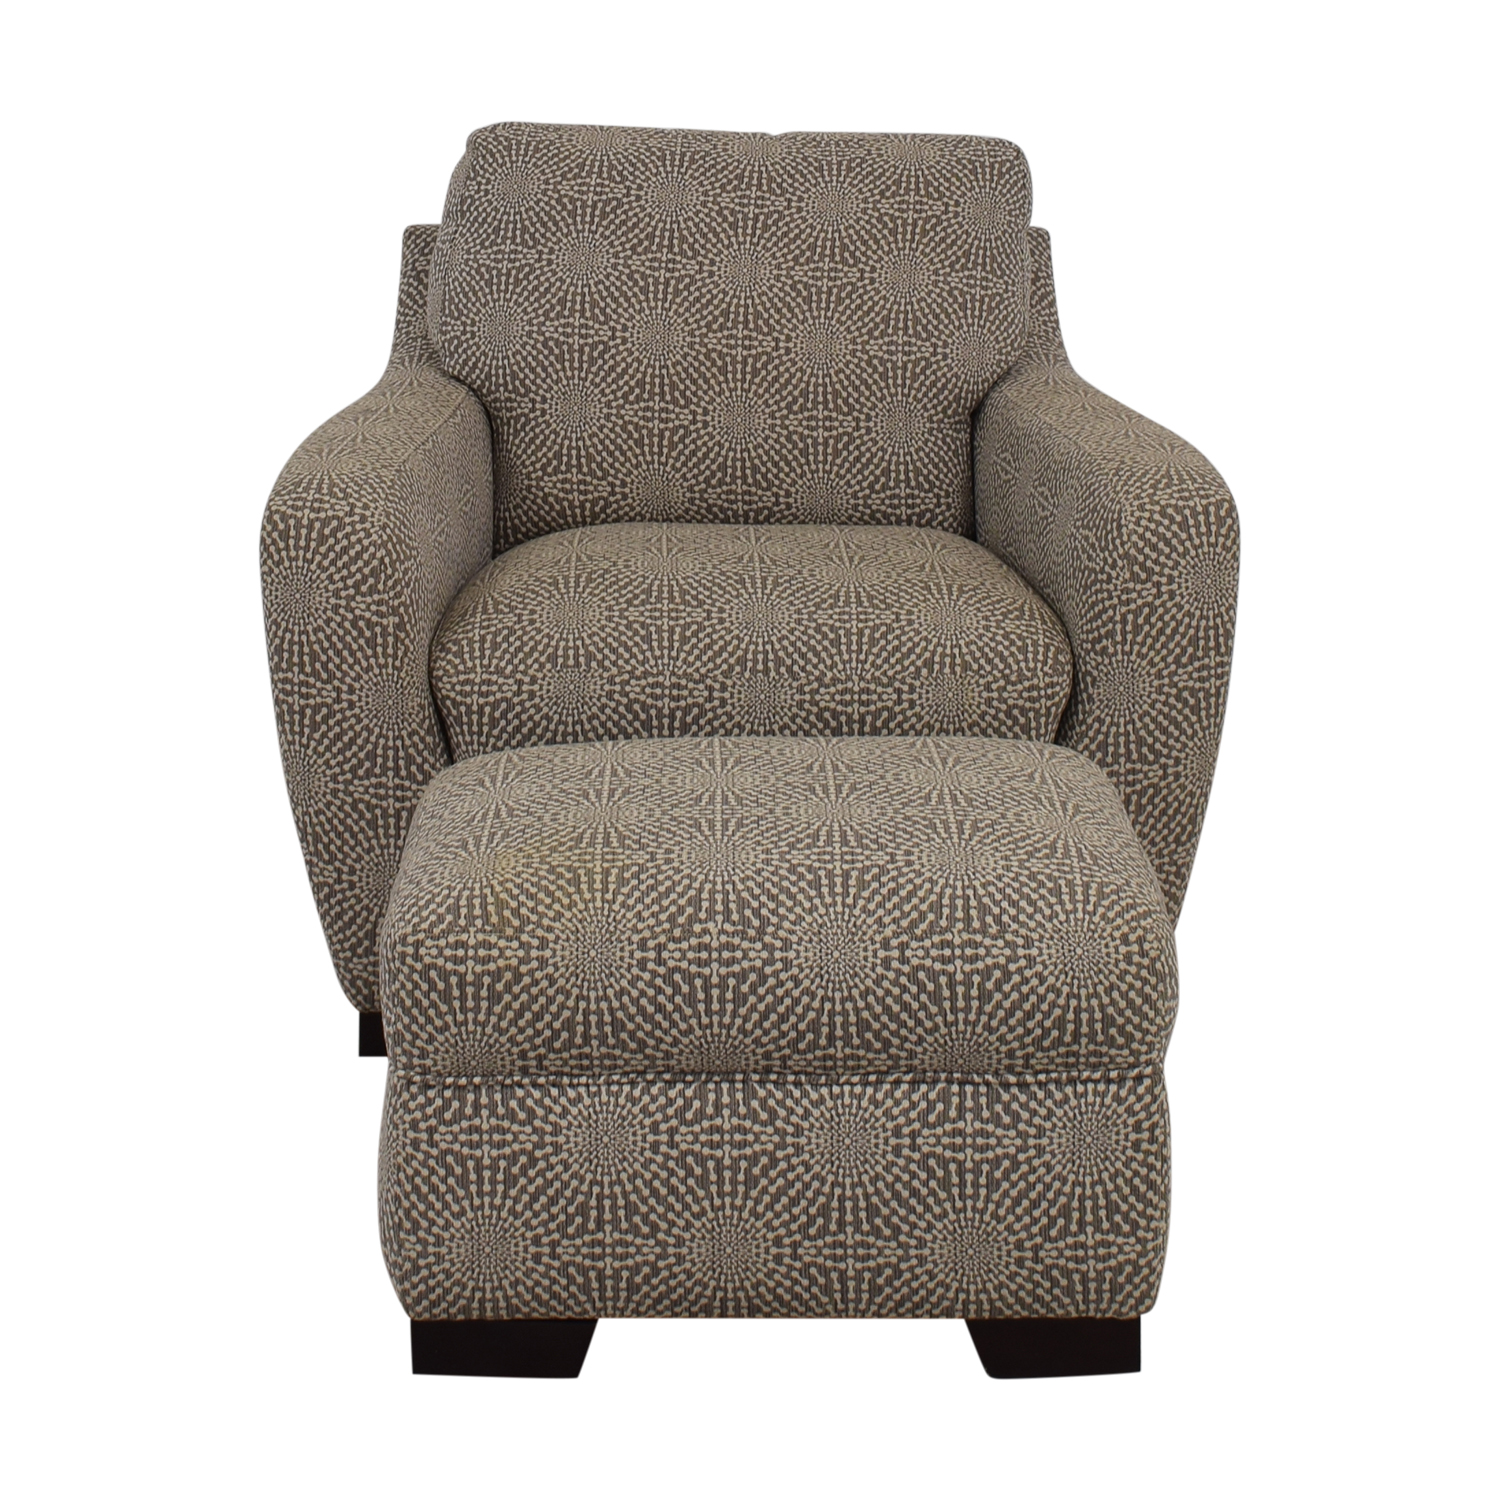 Raymour & Flanigan Raymour & Flanigan Beige and Brown Accent Chair and Ottoman used